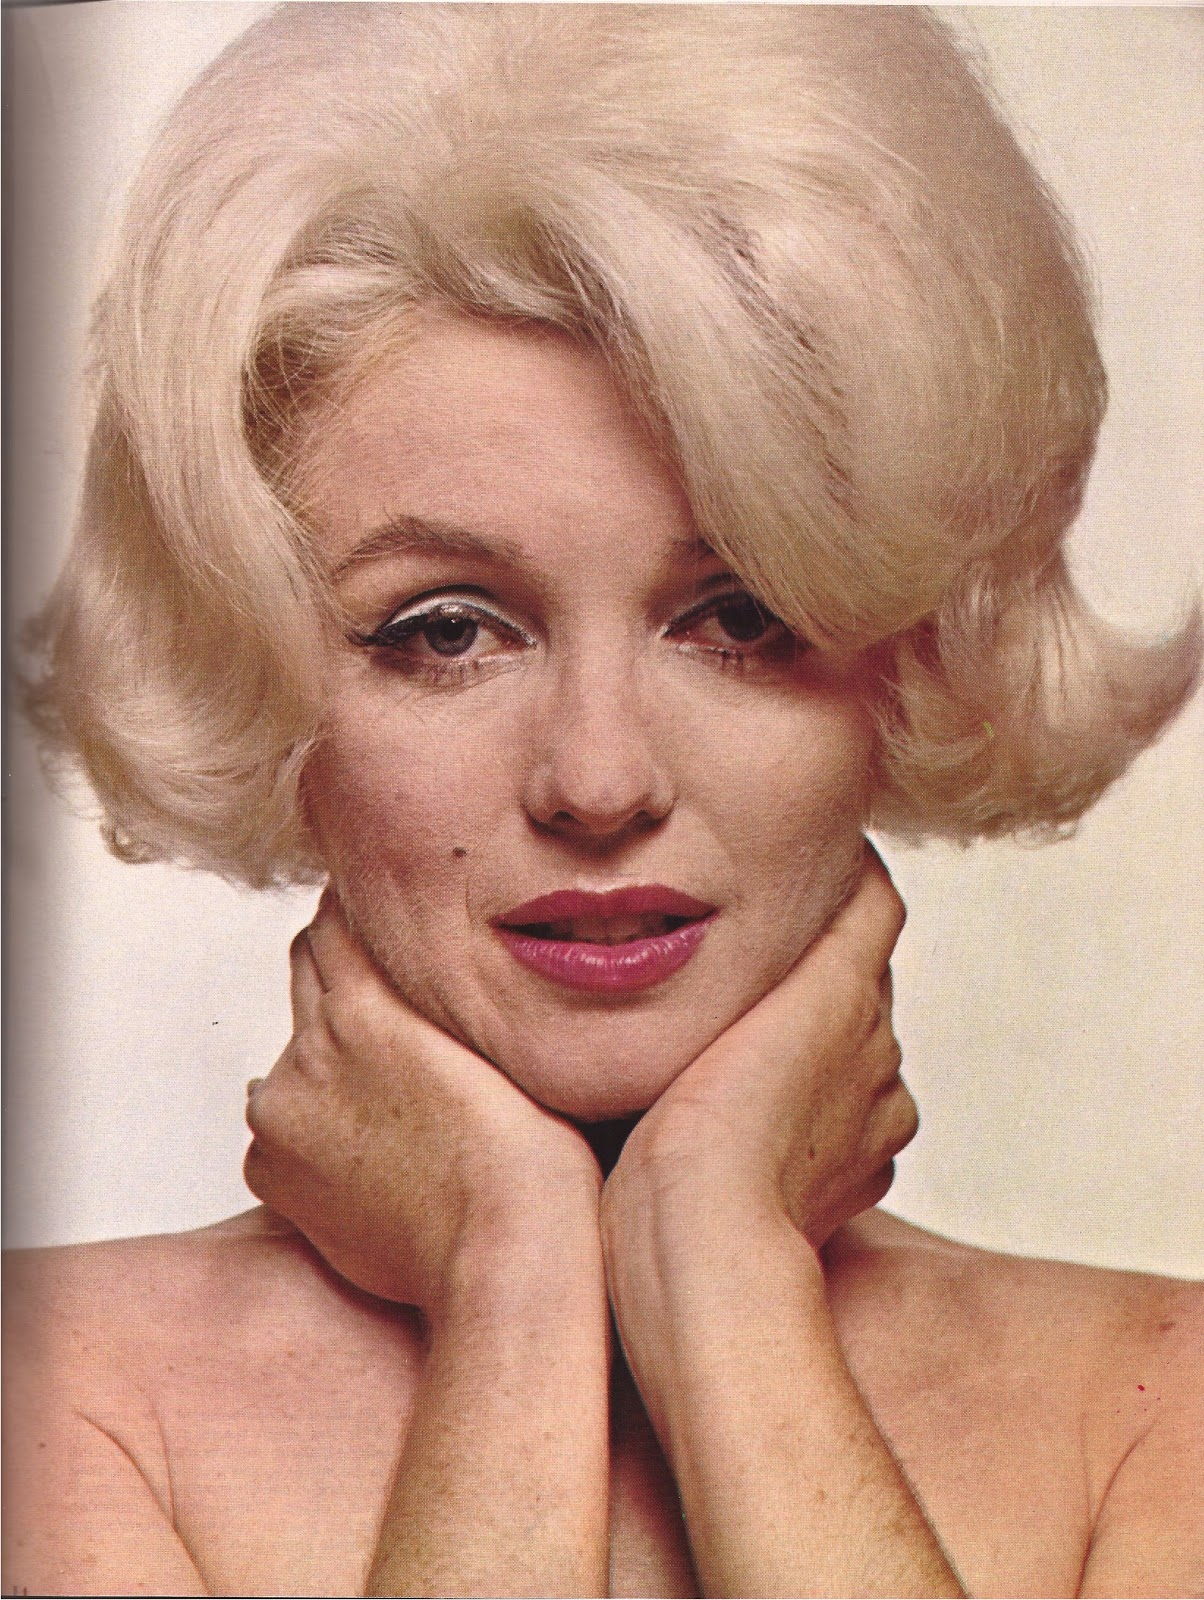 Show Me Nude Pictures Of Marilyn Monroe